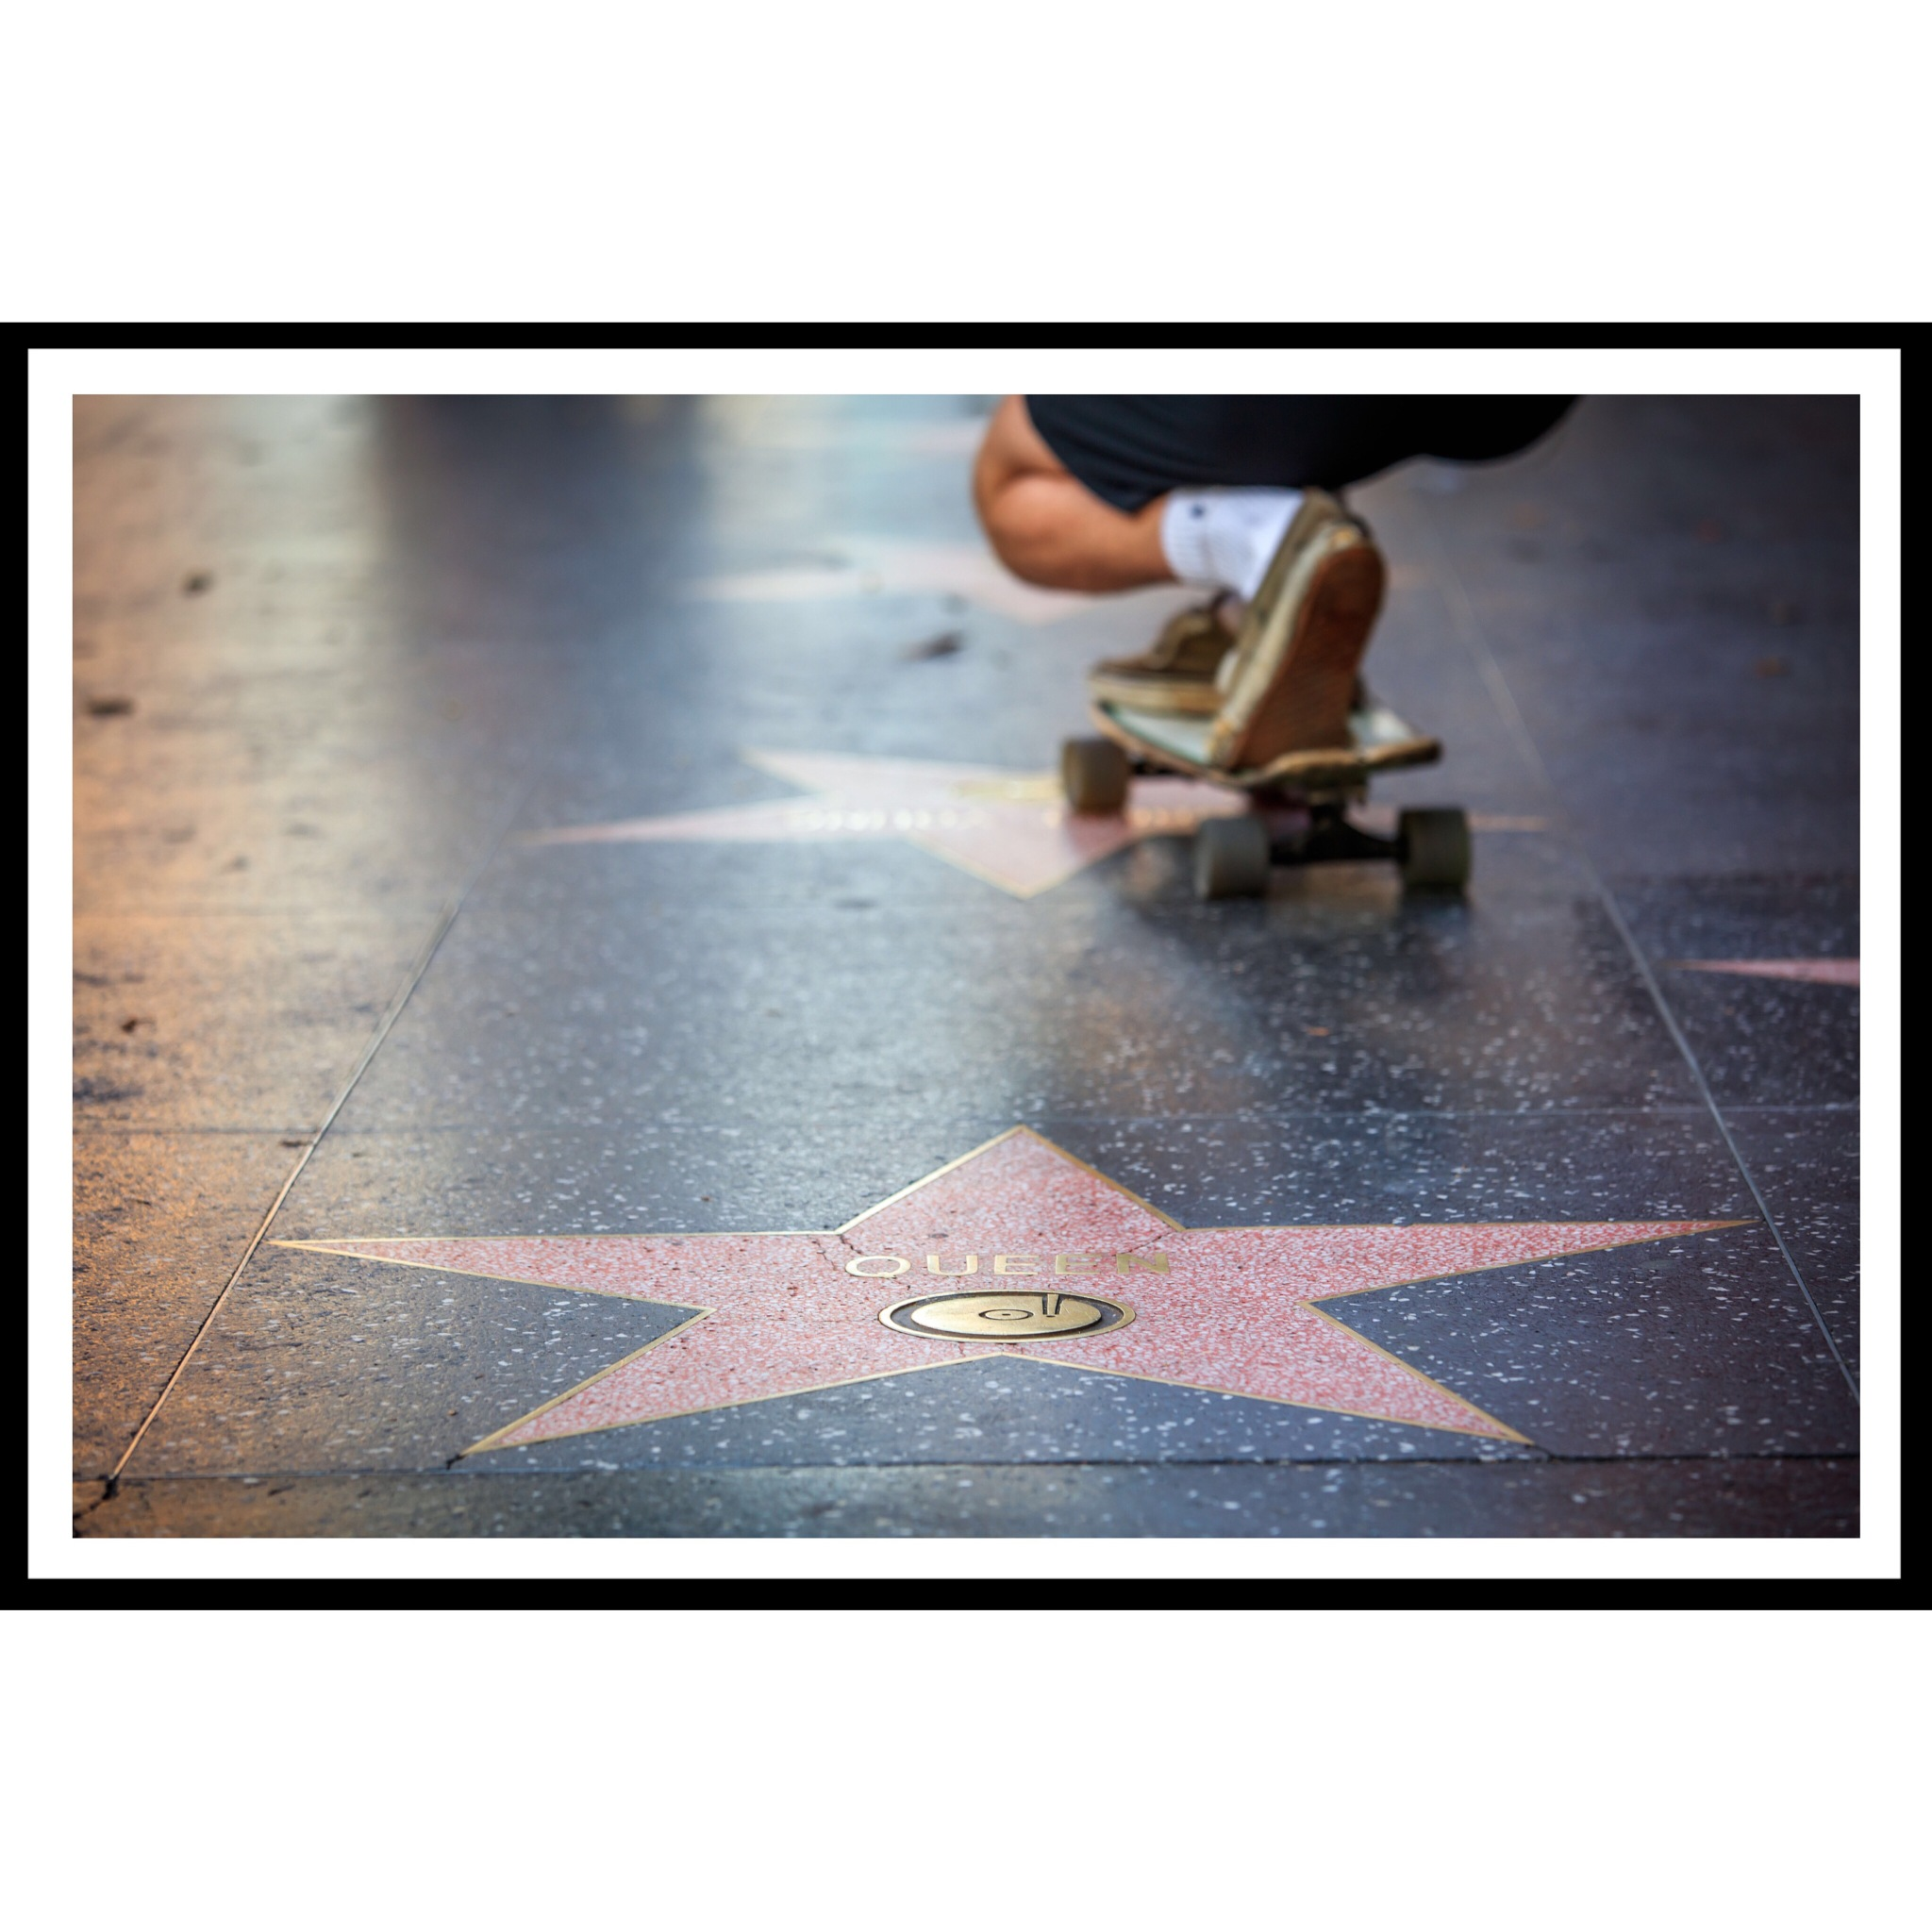 Walk of fame by olajor69